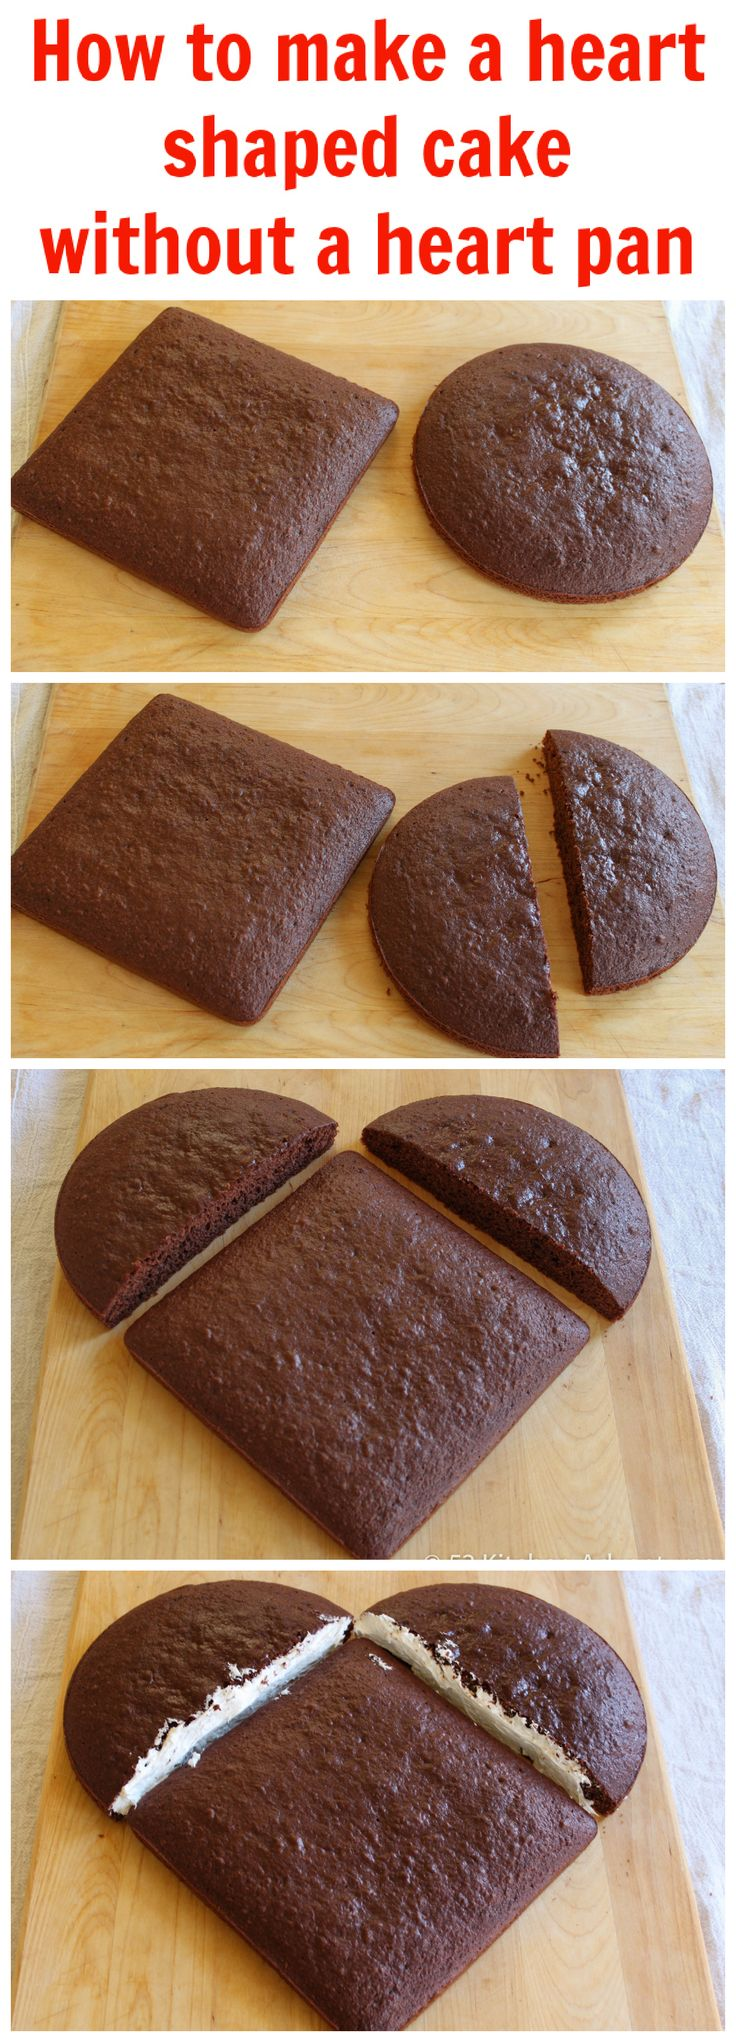 Steps-how to make a heart shaped cake without a cake pan